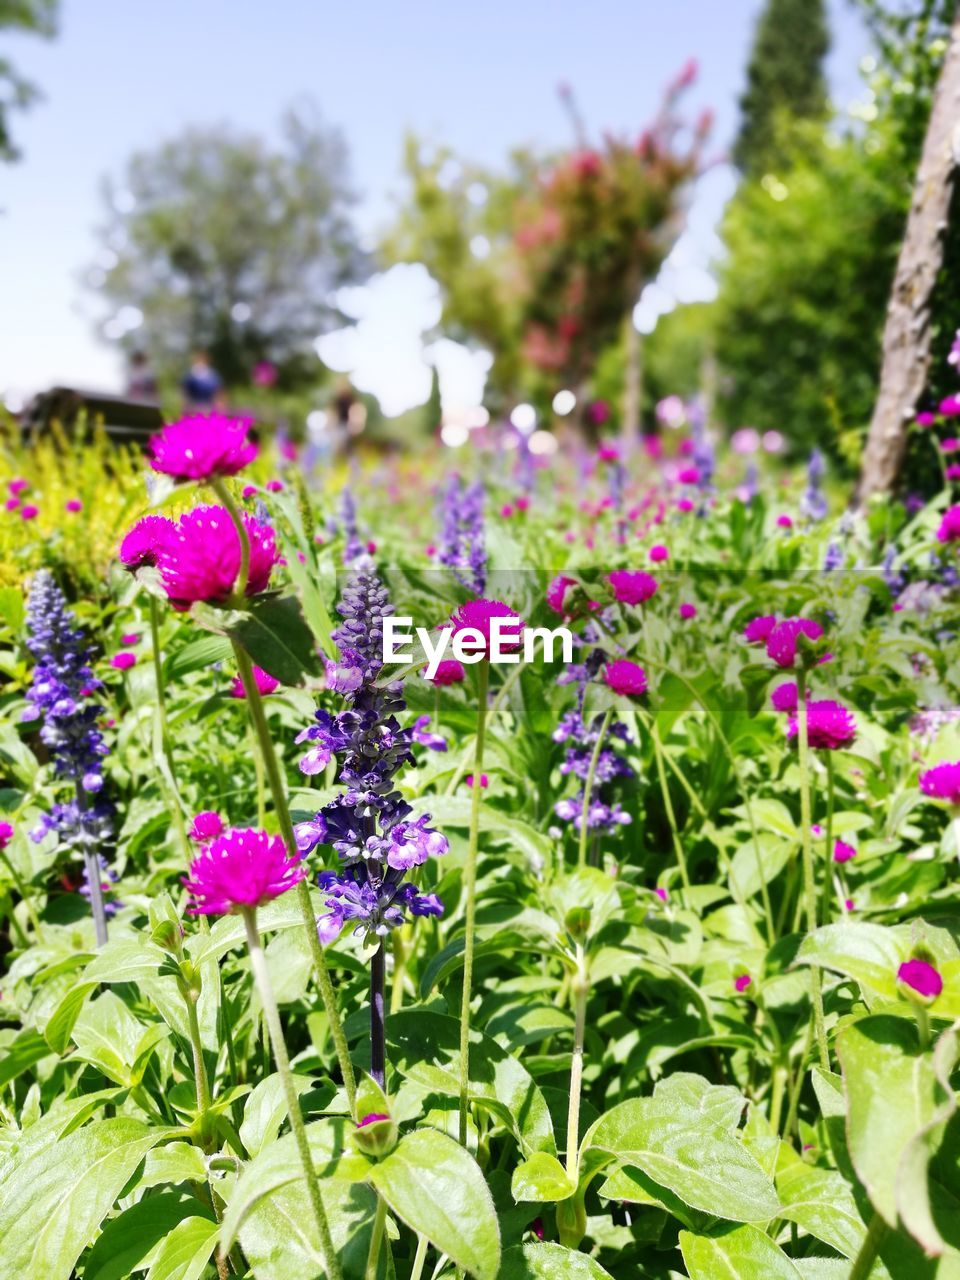 growth, flower, plant, nature, beauty in nature, fragility, freshness, green color, day, outdoors, no people, petal, leaf, blooming, field, purple, focus on foreground, flower head, close-up, flowerbed, petunia